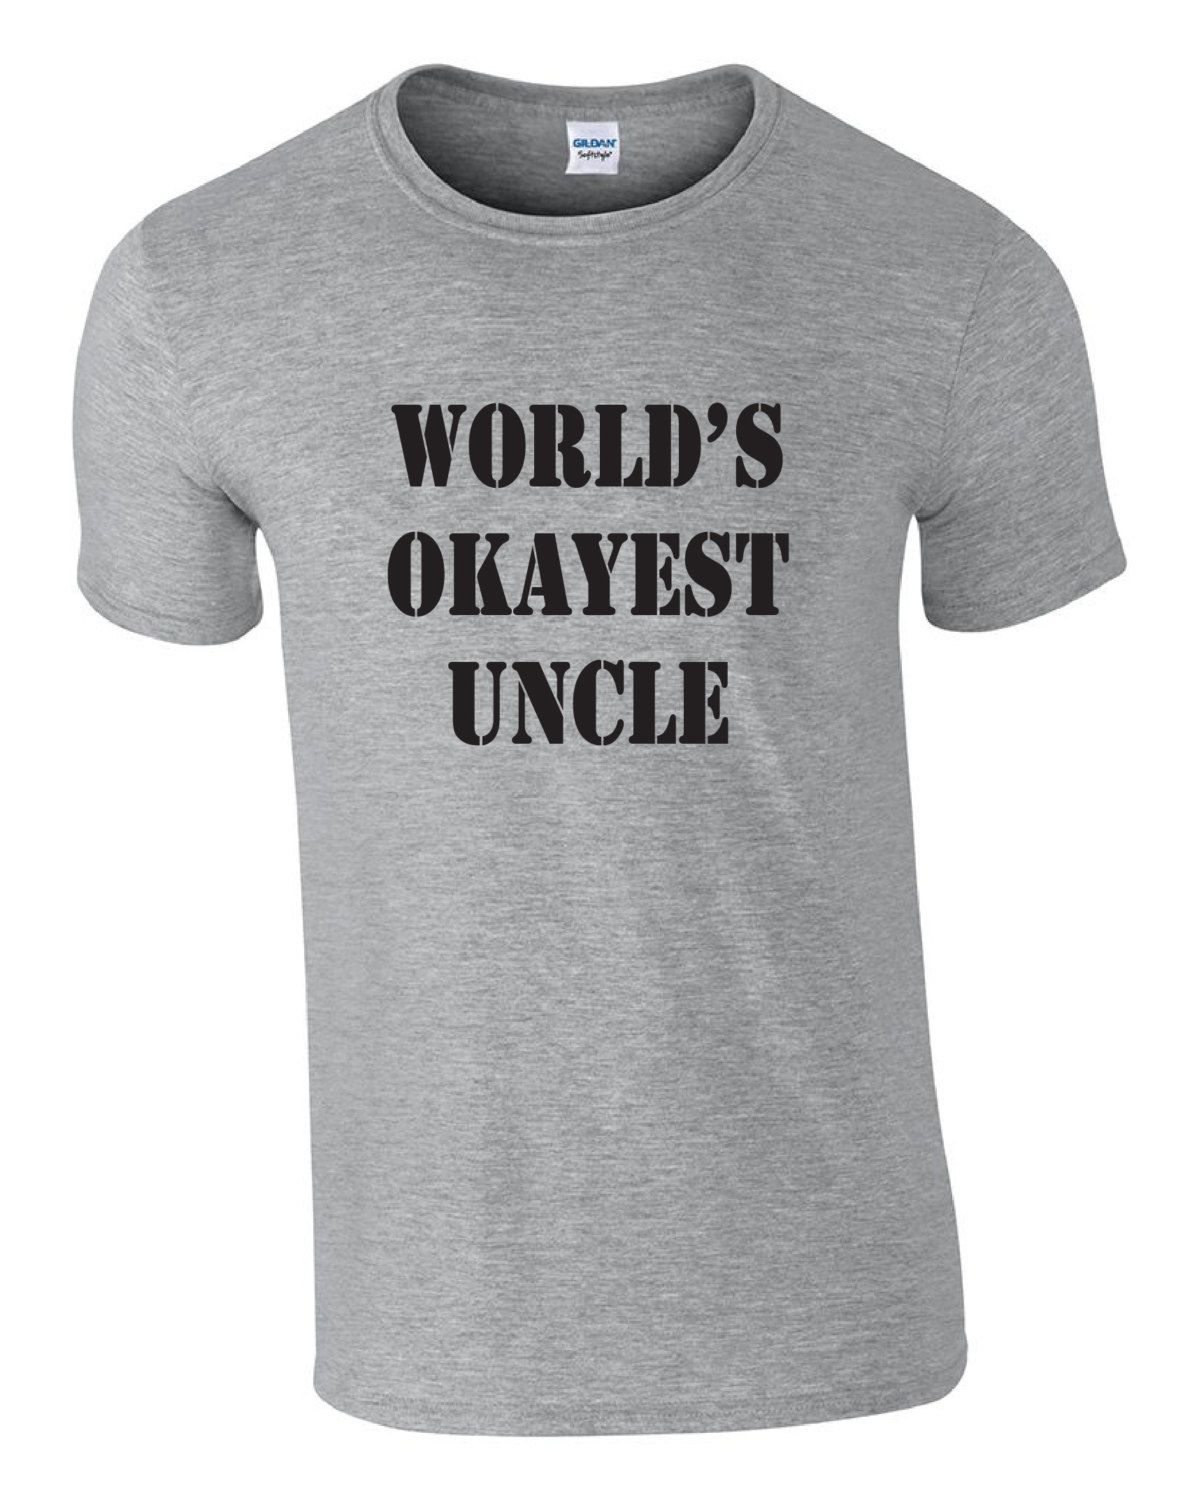 Funny Tshirt For Uncle Worlds Okayest Shirt Gag Gift Idea Uncles